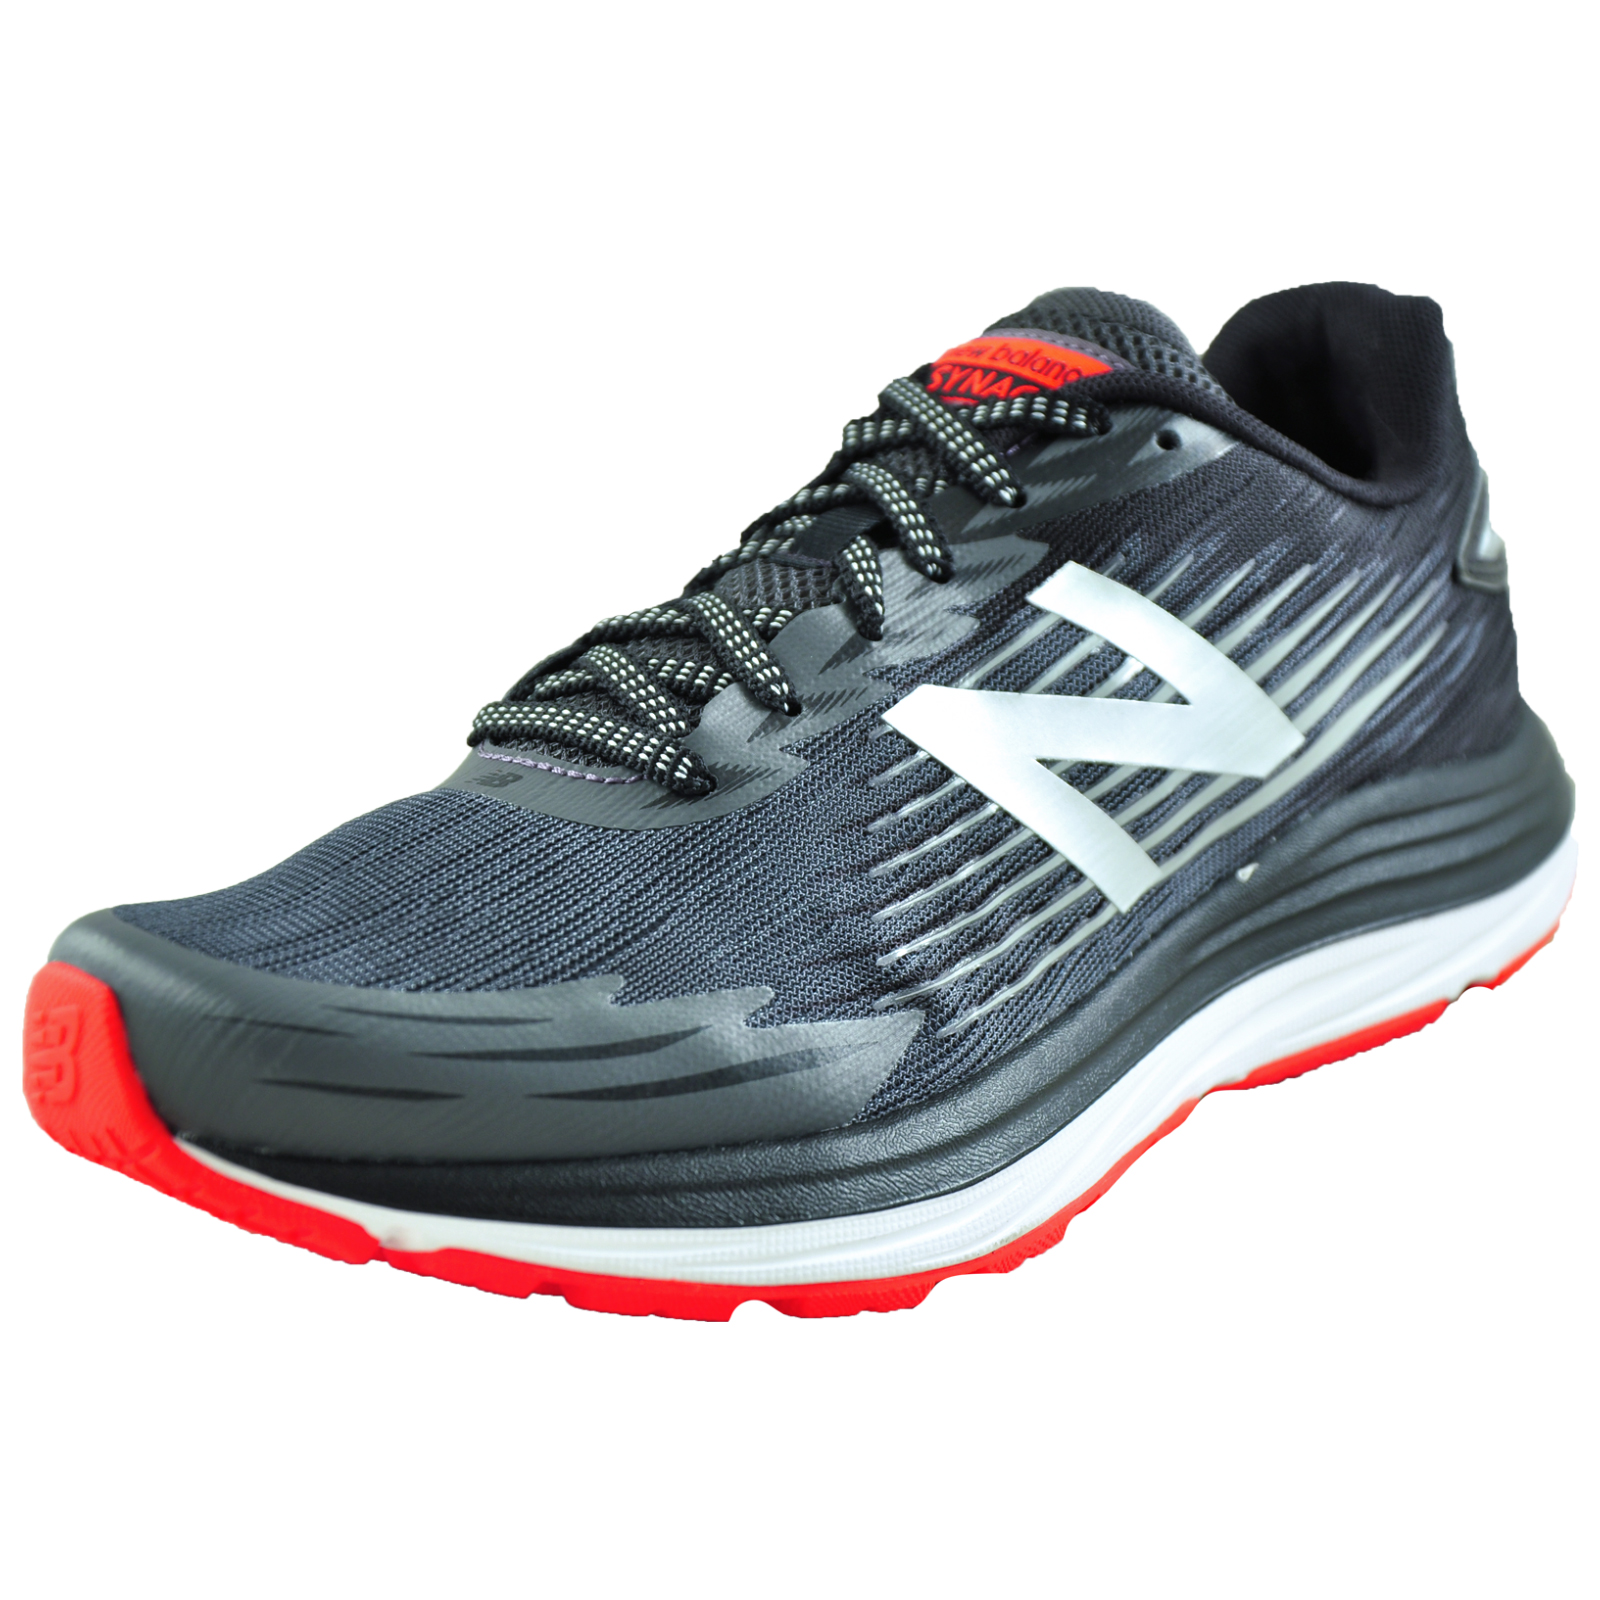 official photos 42a03 7ef39 Details about New Balance Synact 660 V5 Premium Mens Running Shoes Gym  Fitness Trainers Black